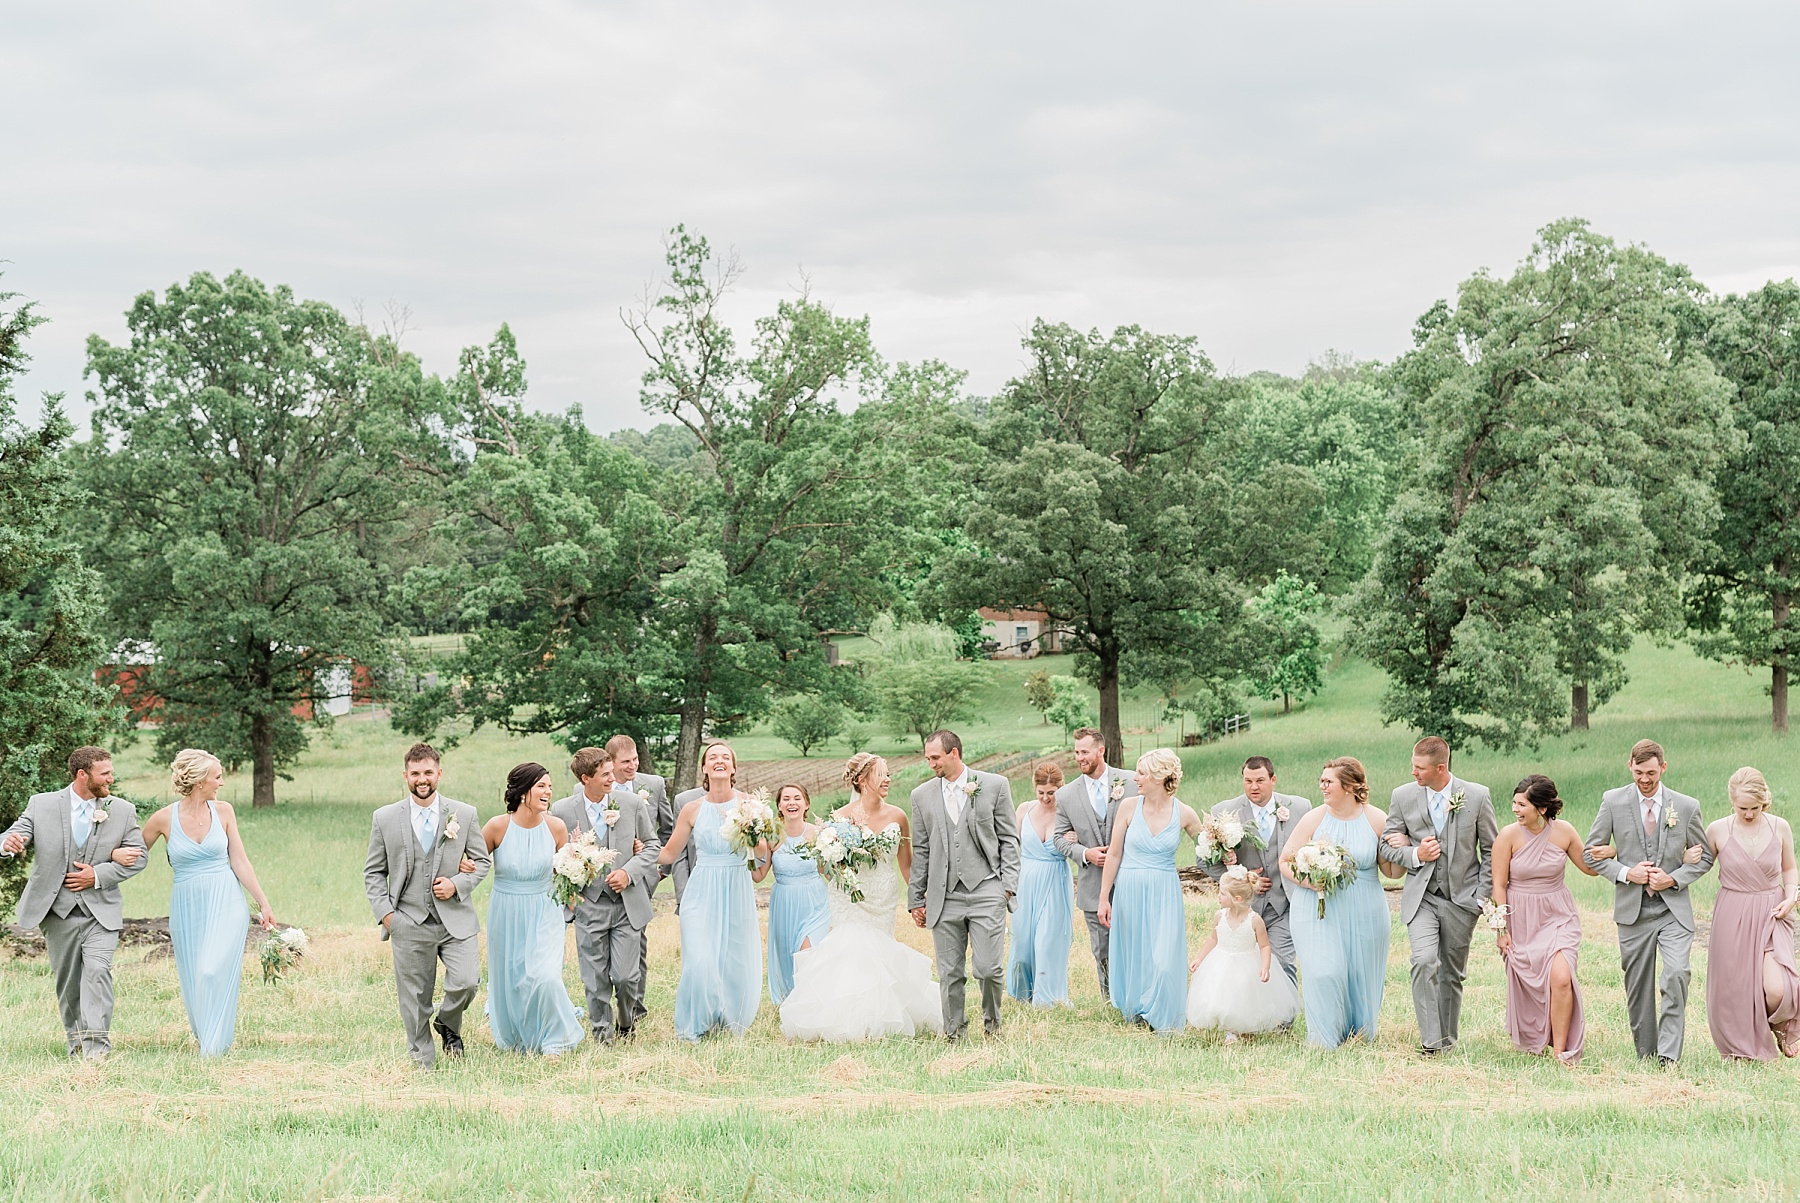 Sky Blue and Quartz Spring Wedding at Open Fields of Family Farm by Kelsi Kliethermes Photography Best Missouri and Maui Wedding Photographer_0017.jpg